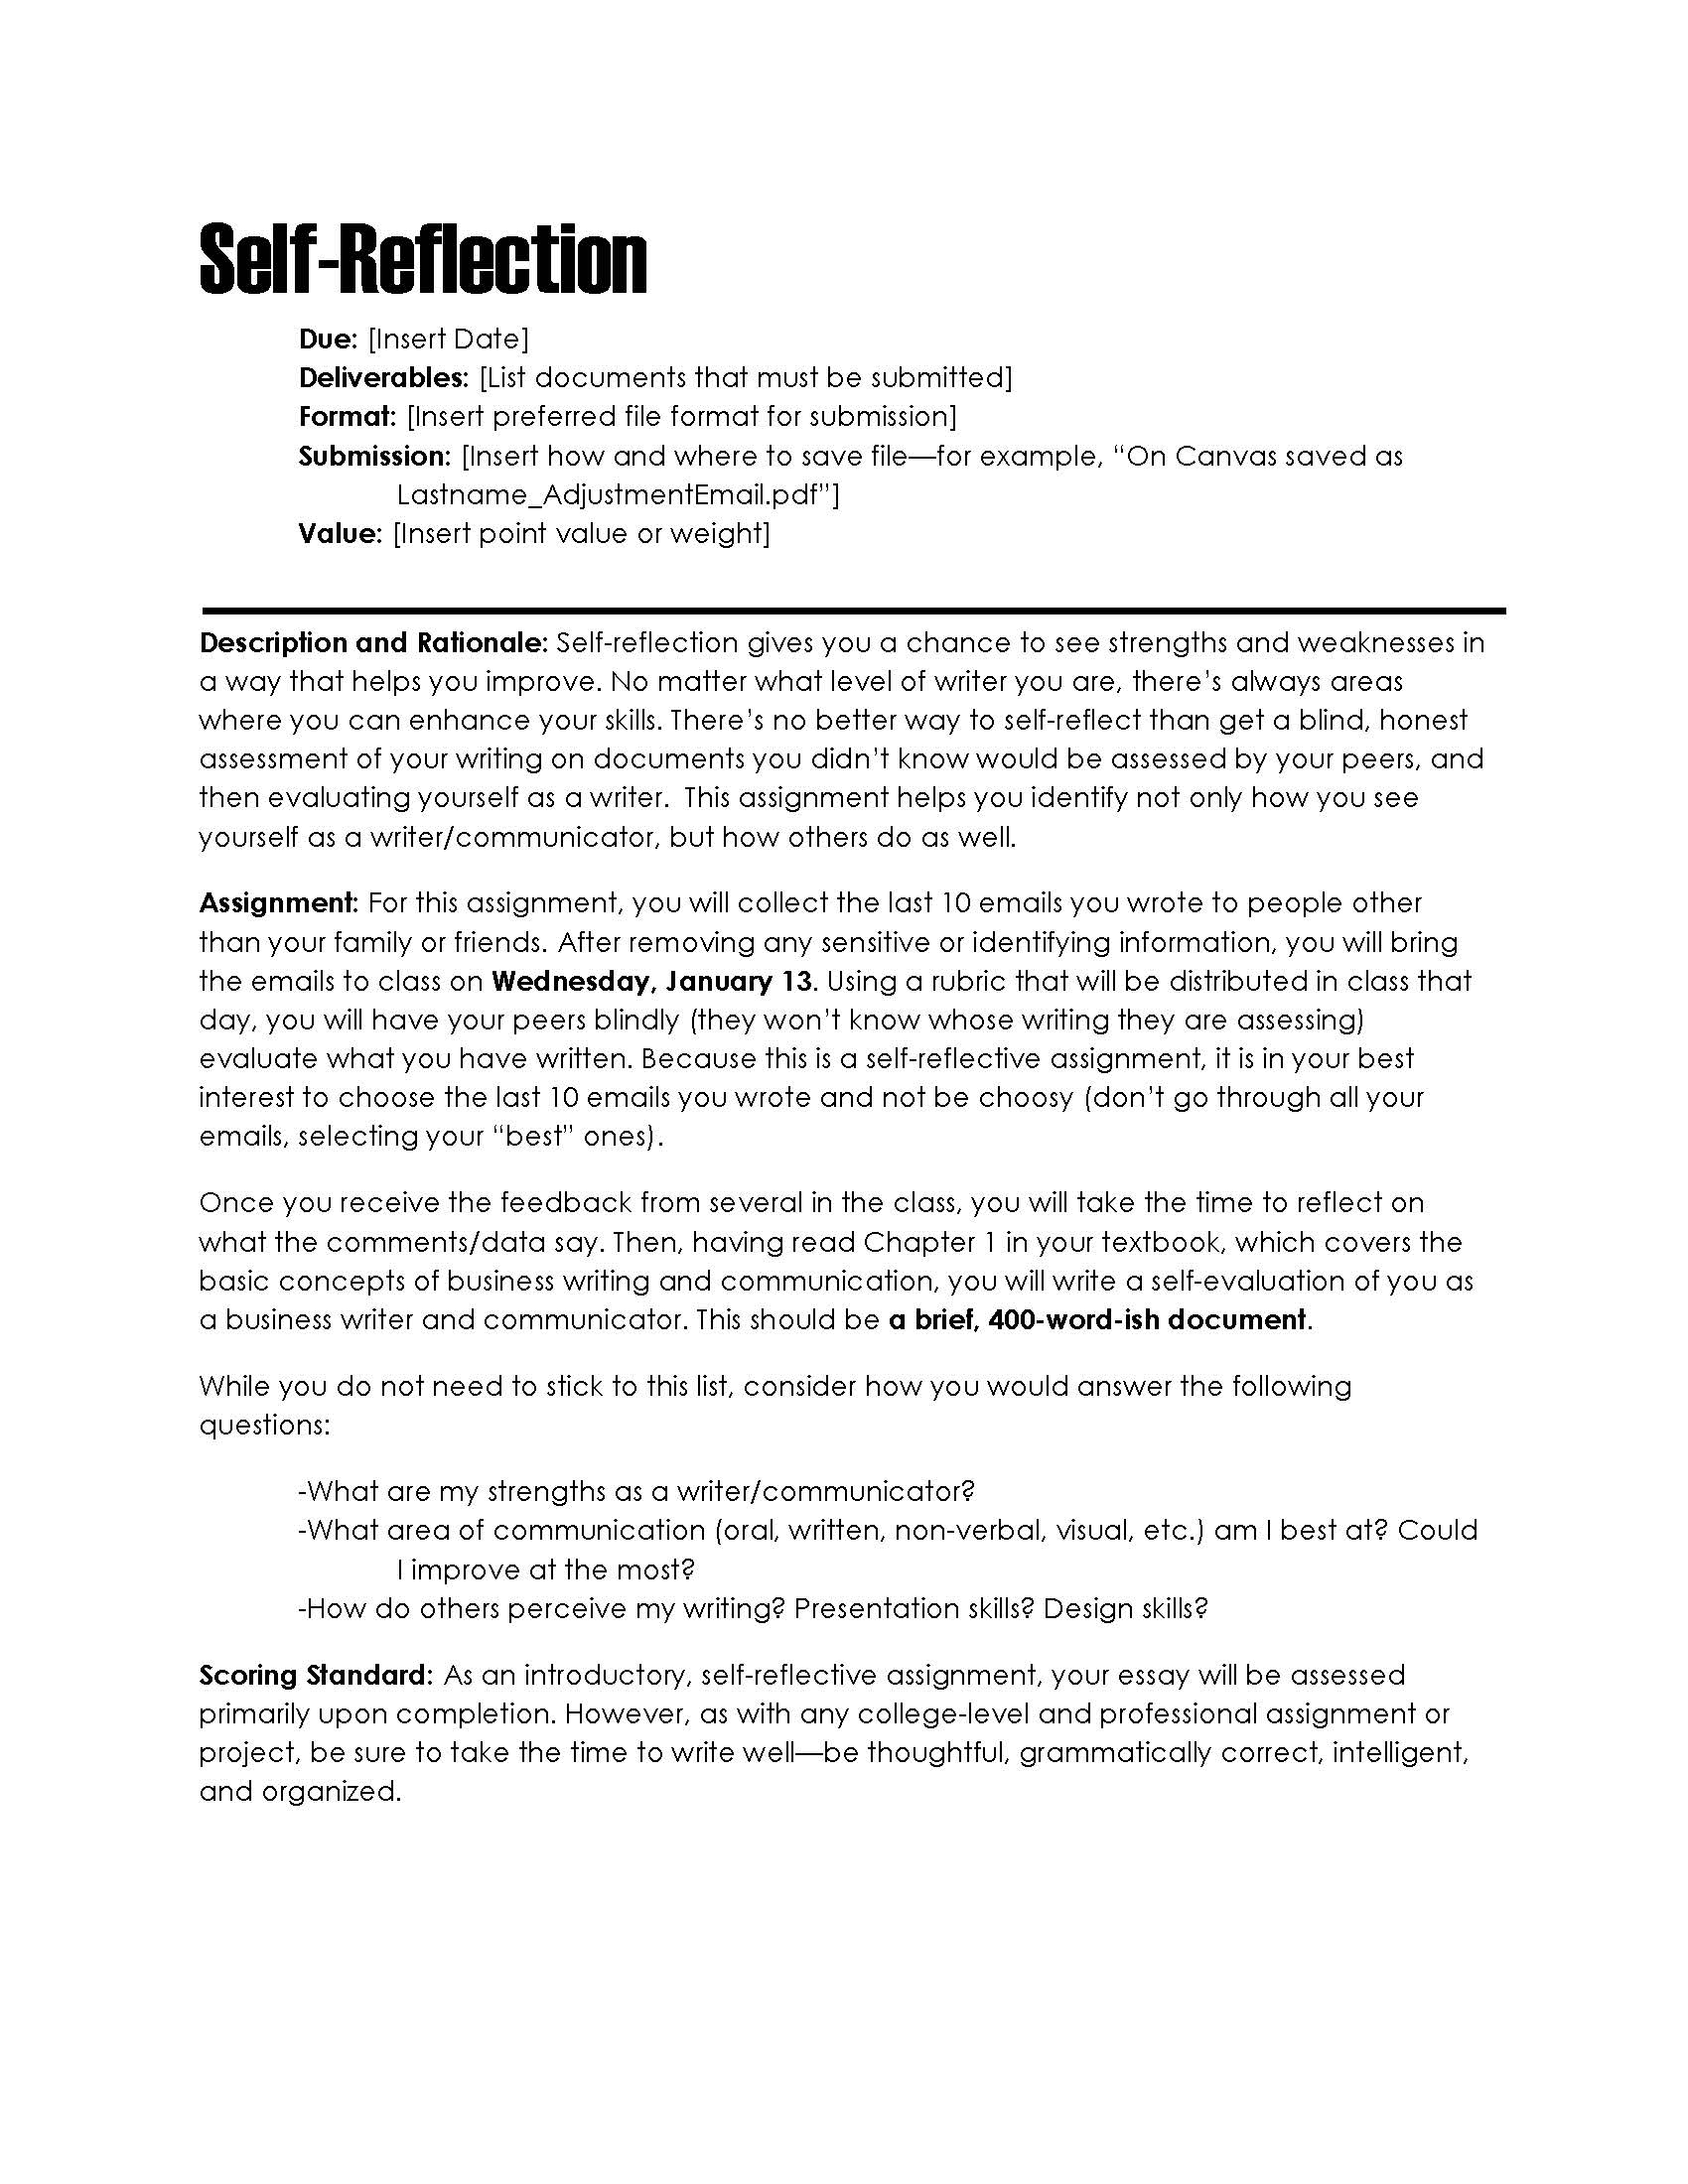 Personal reflection paper example